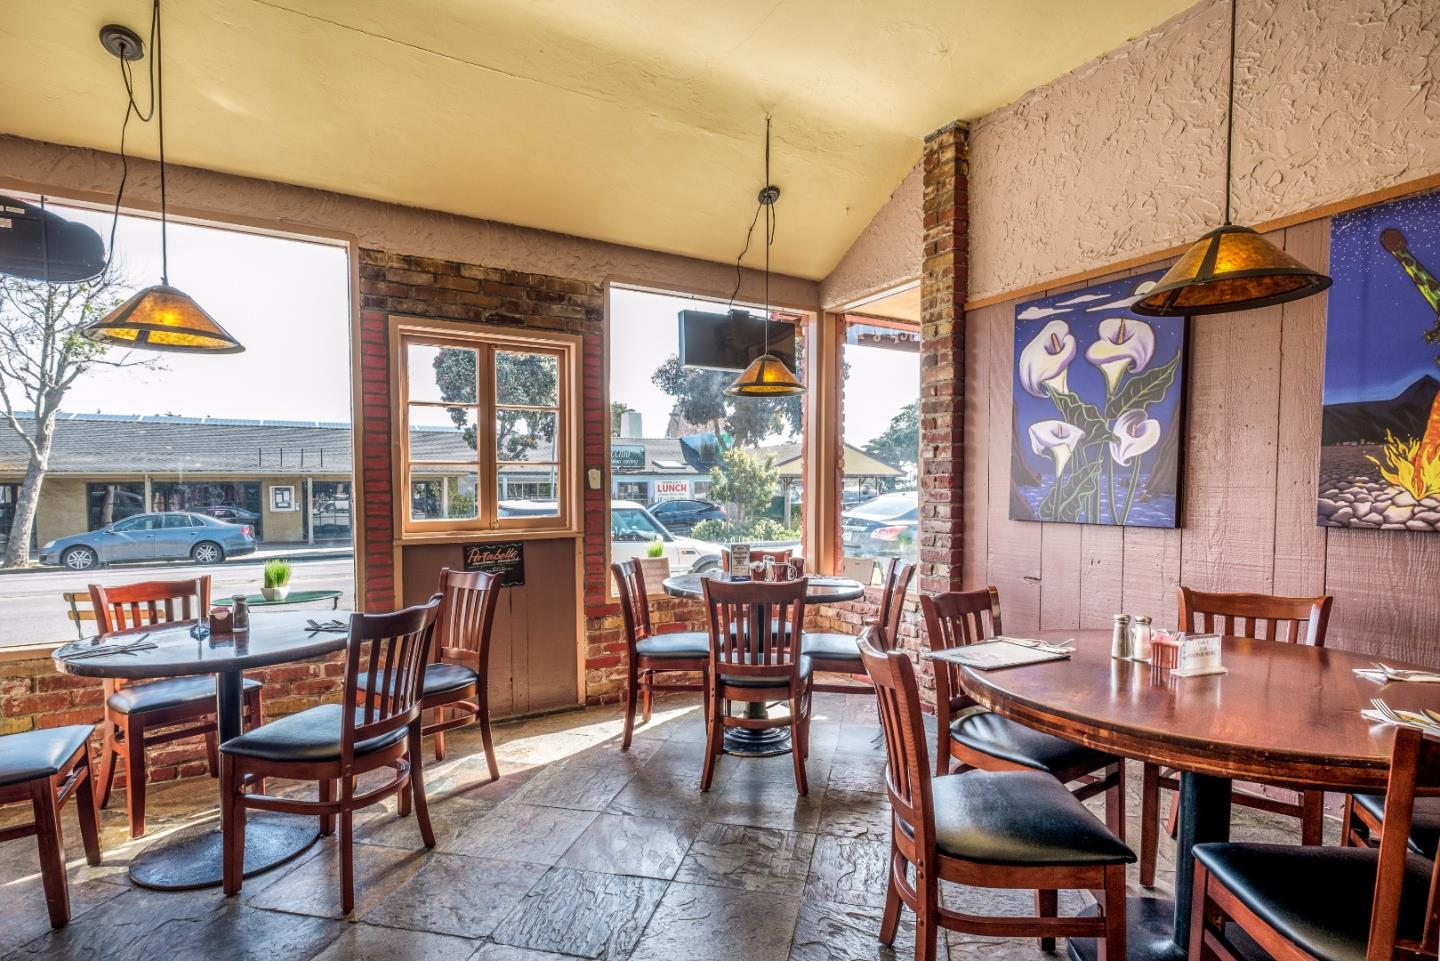 Additional photo for property listing at 113 Central Avenue  Pacific Grove, カリフォルニア 93950 アメリカ合衆国